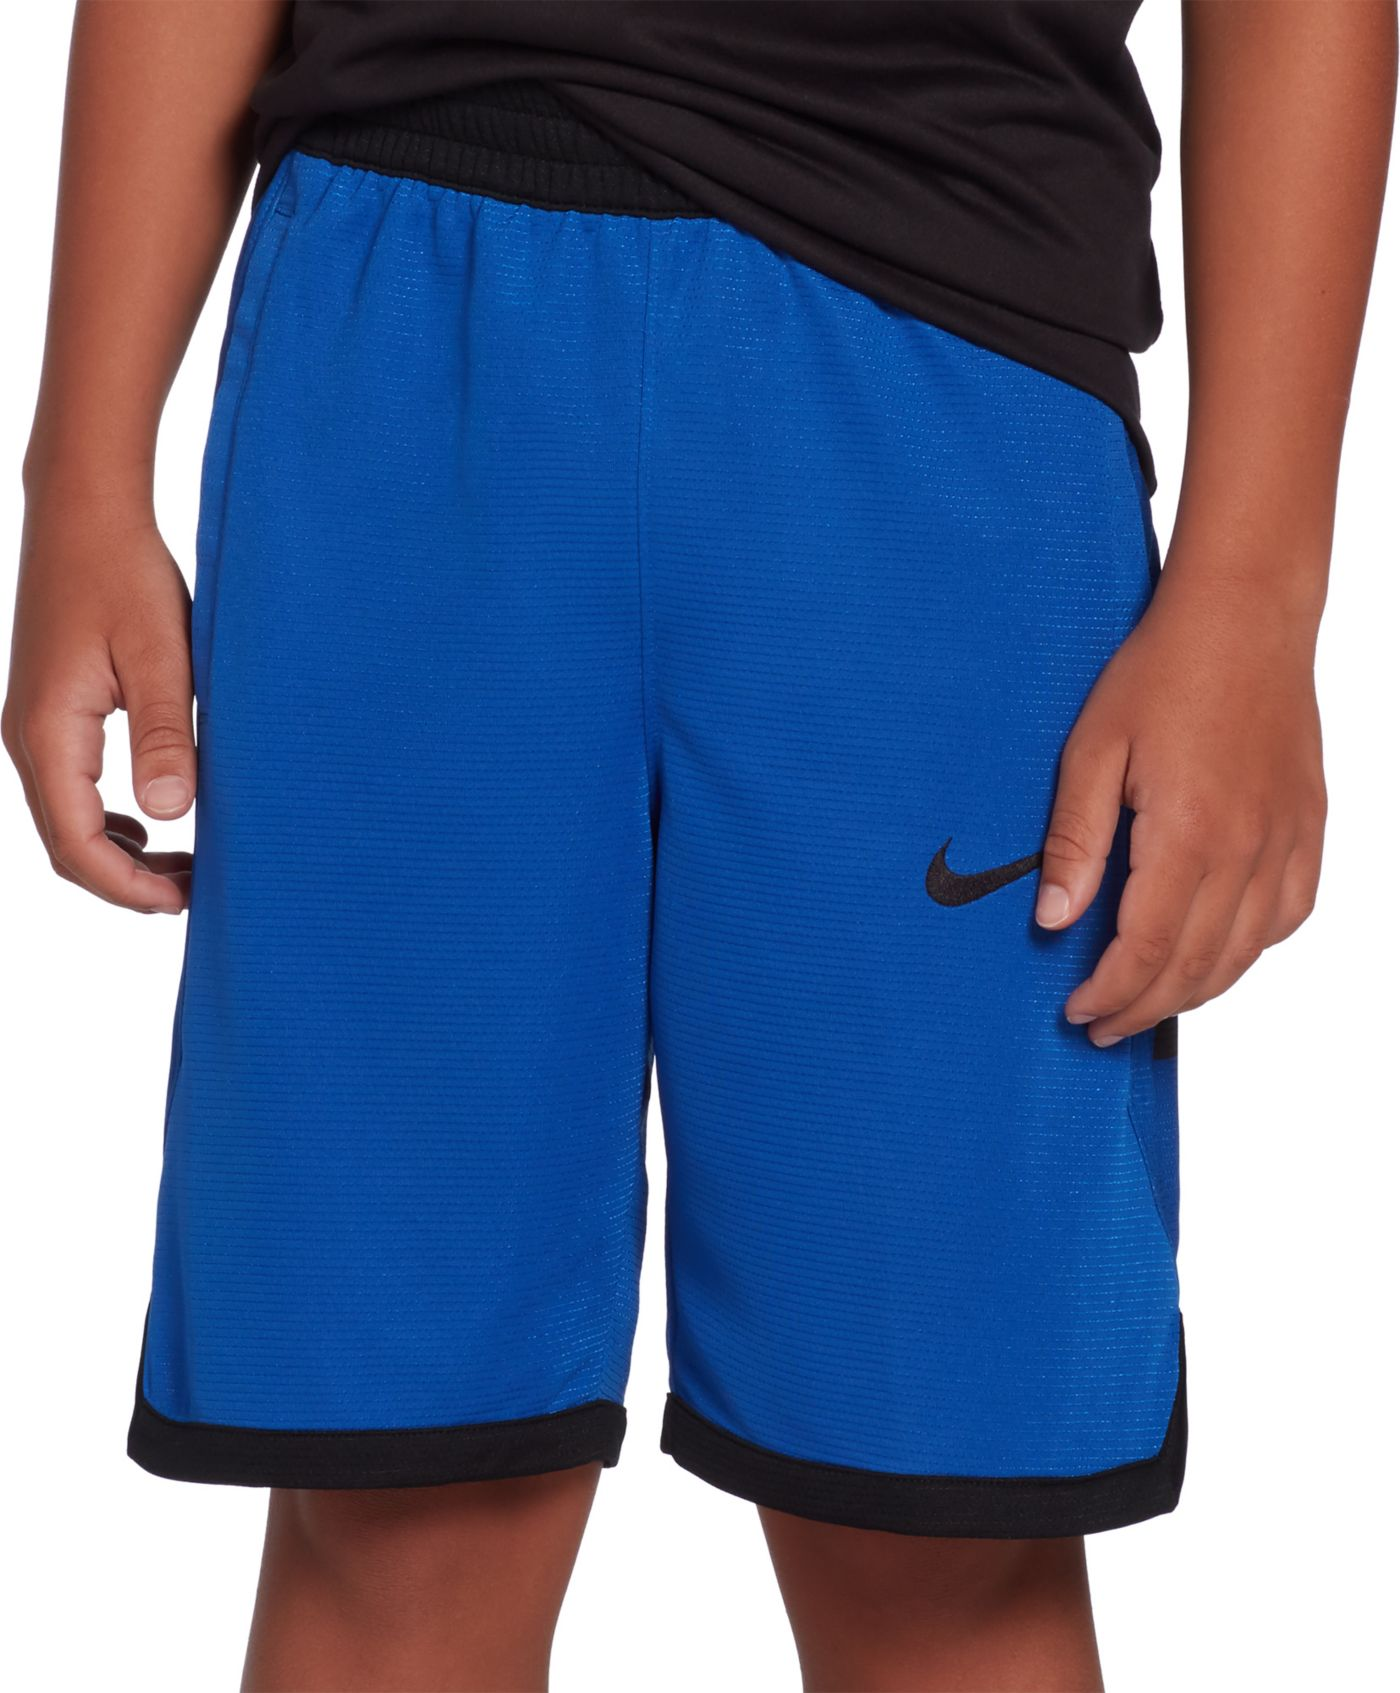 Nike Boys' Dri-FIT Elite Stripe Basketball Shorts